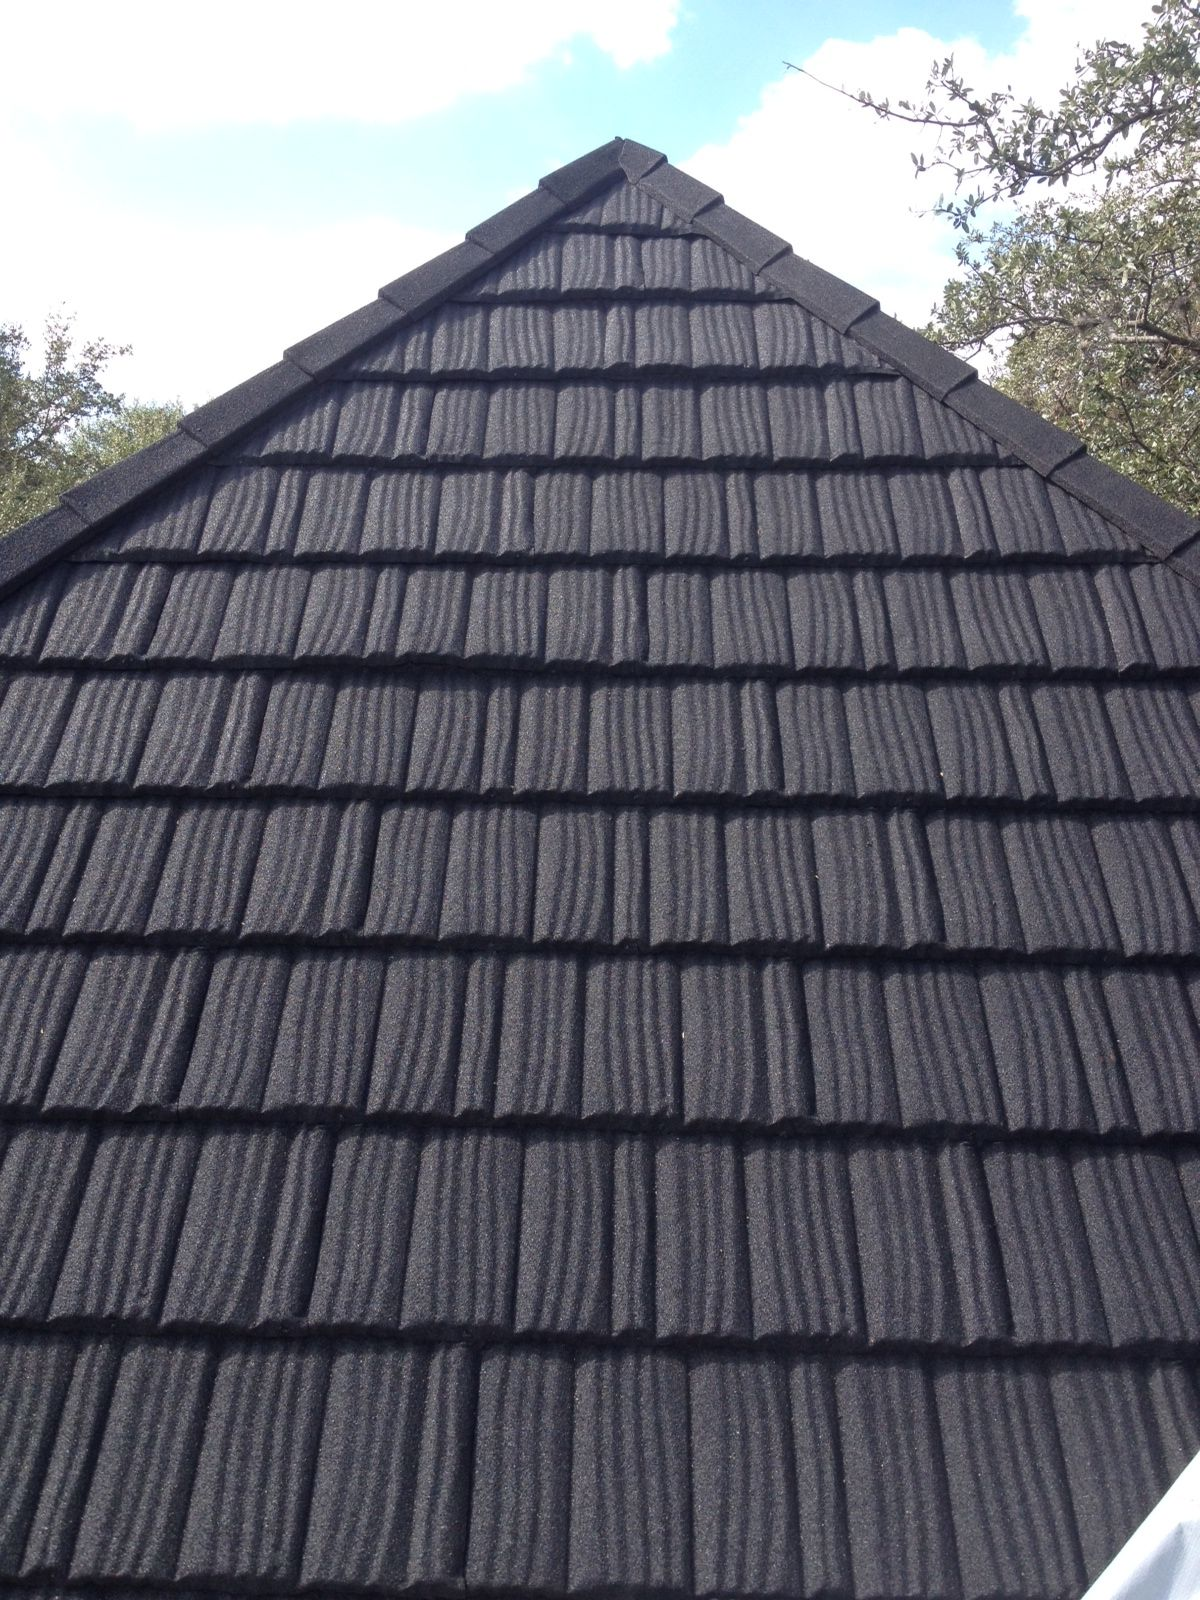 Image Result For Wood Roof Shingle Drawing Detail Wood Roof Wood Roof Shingles Roof Shingles